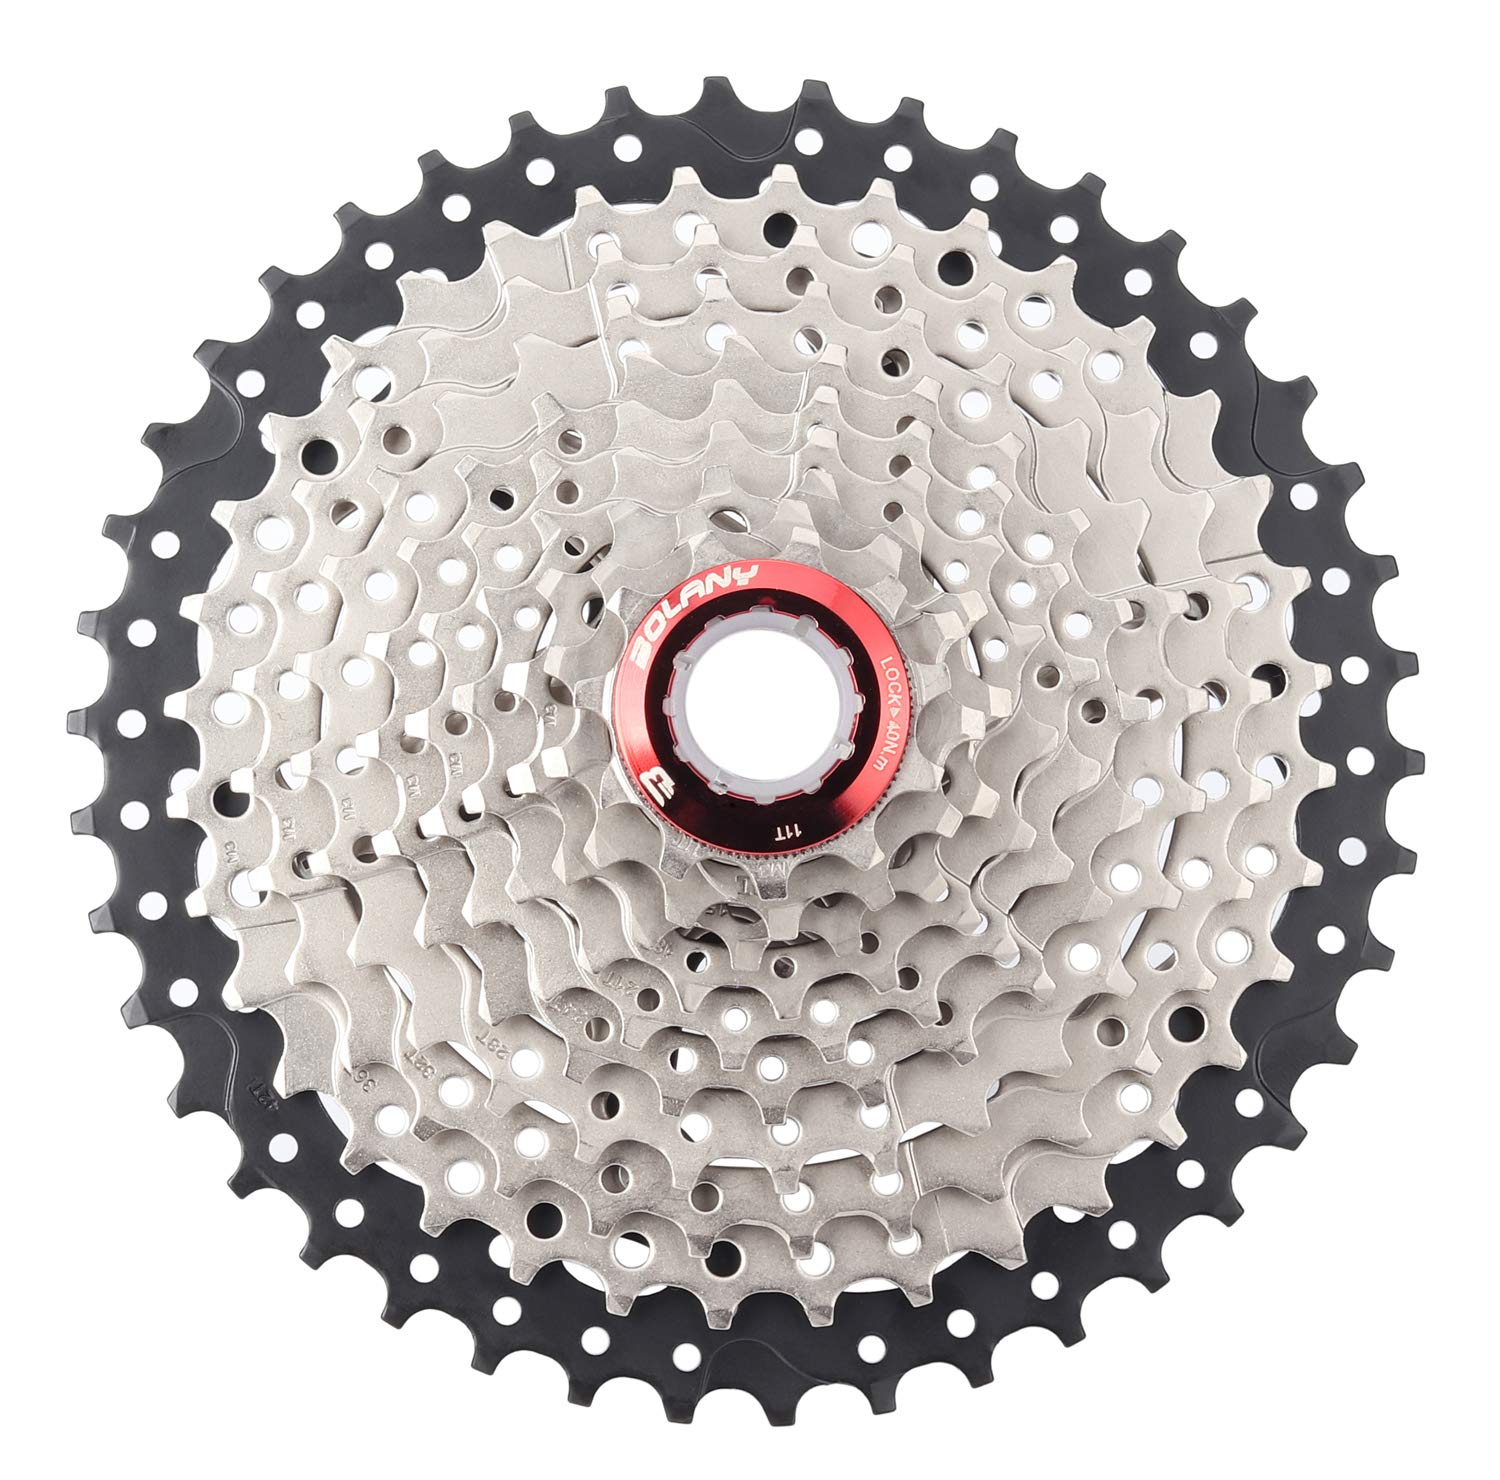 BOLANY 10 Speed Cassette Fit For MTB Black Silver 11-42T